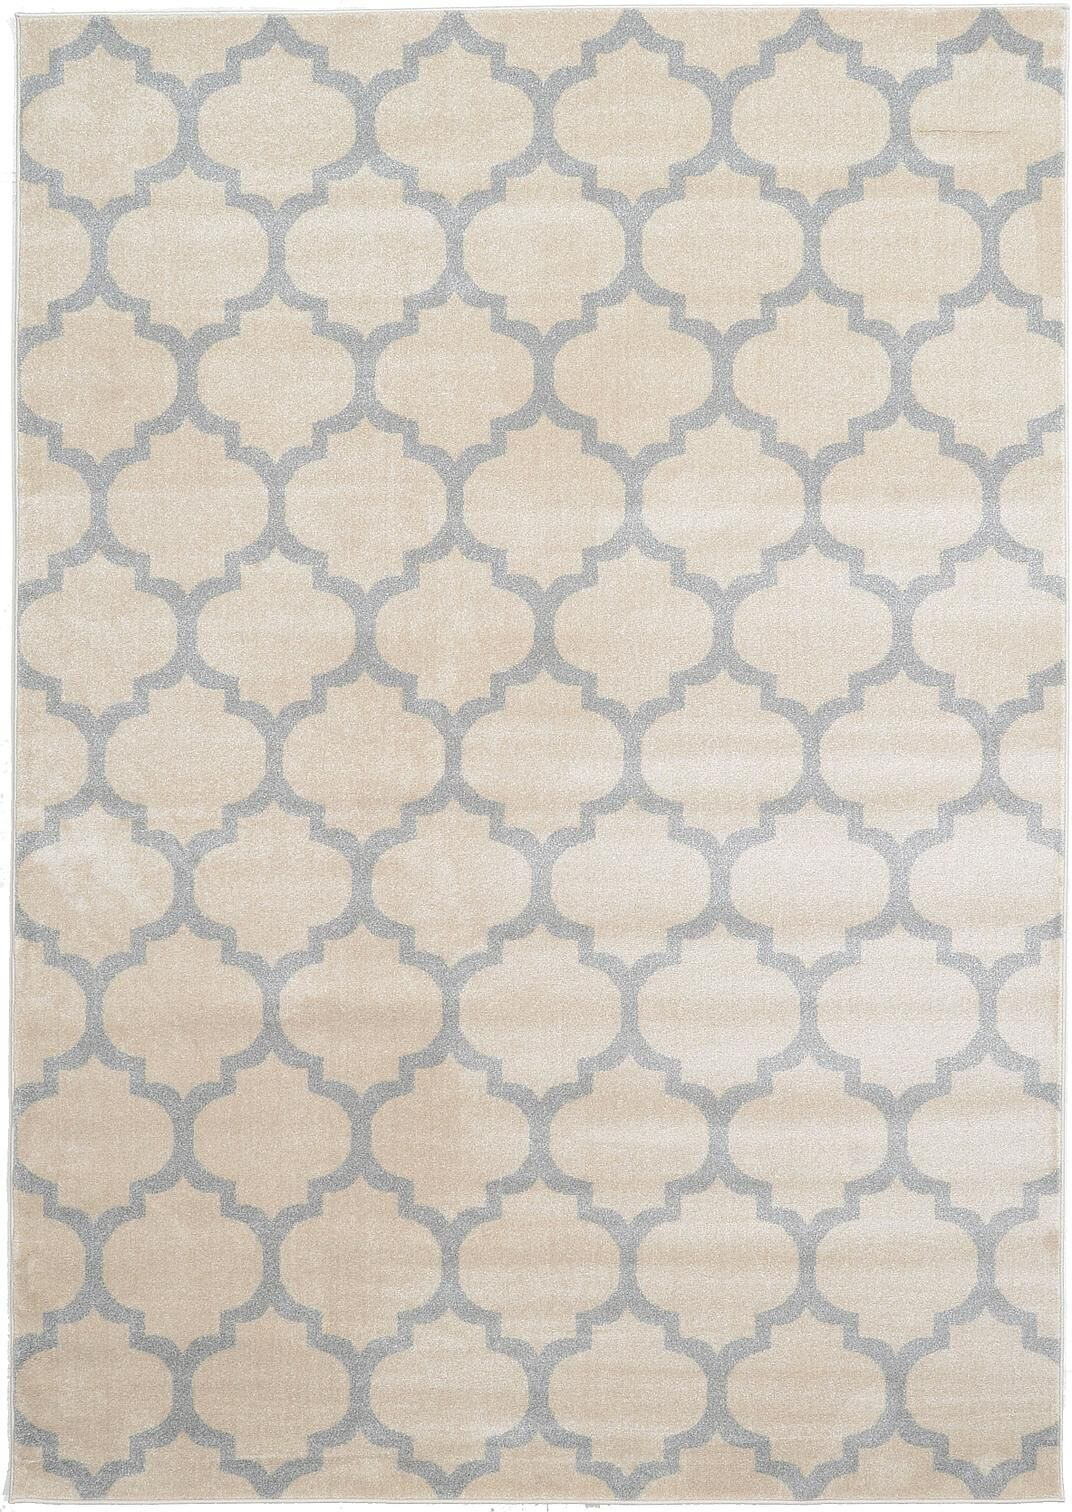 Brooklyn Ivory/Gray Area Rug Rug Size: 7'10